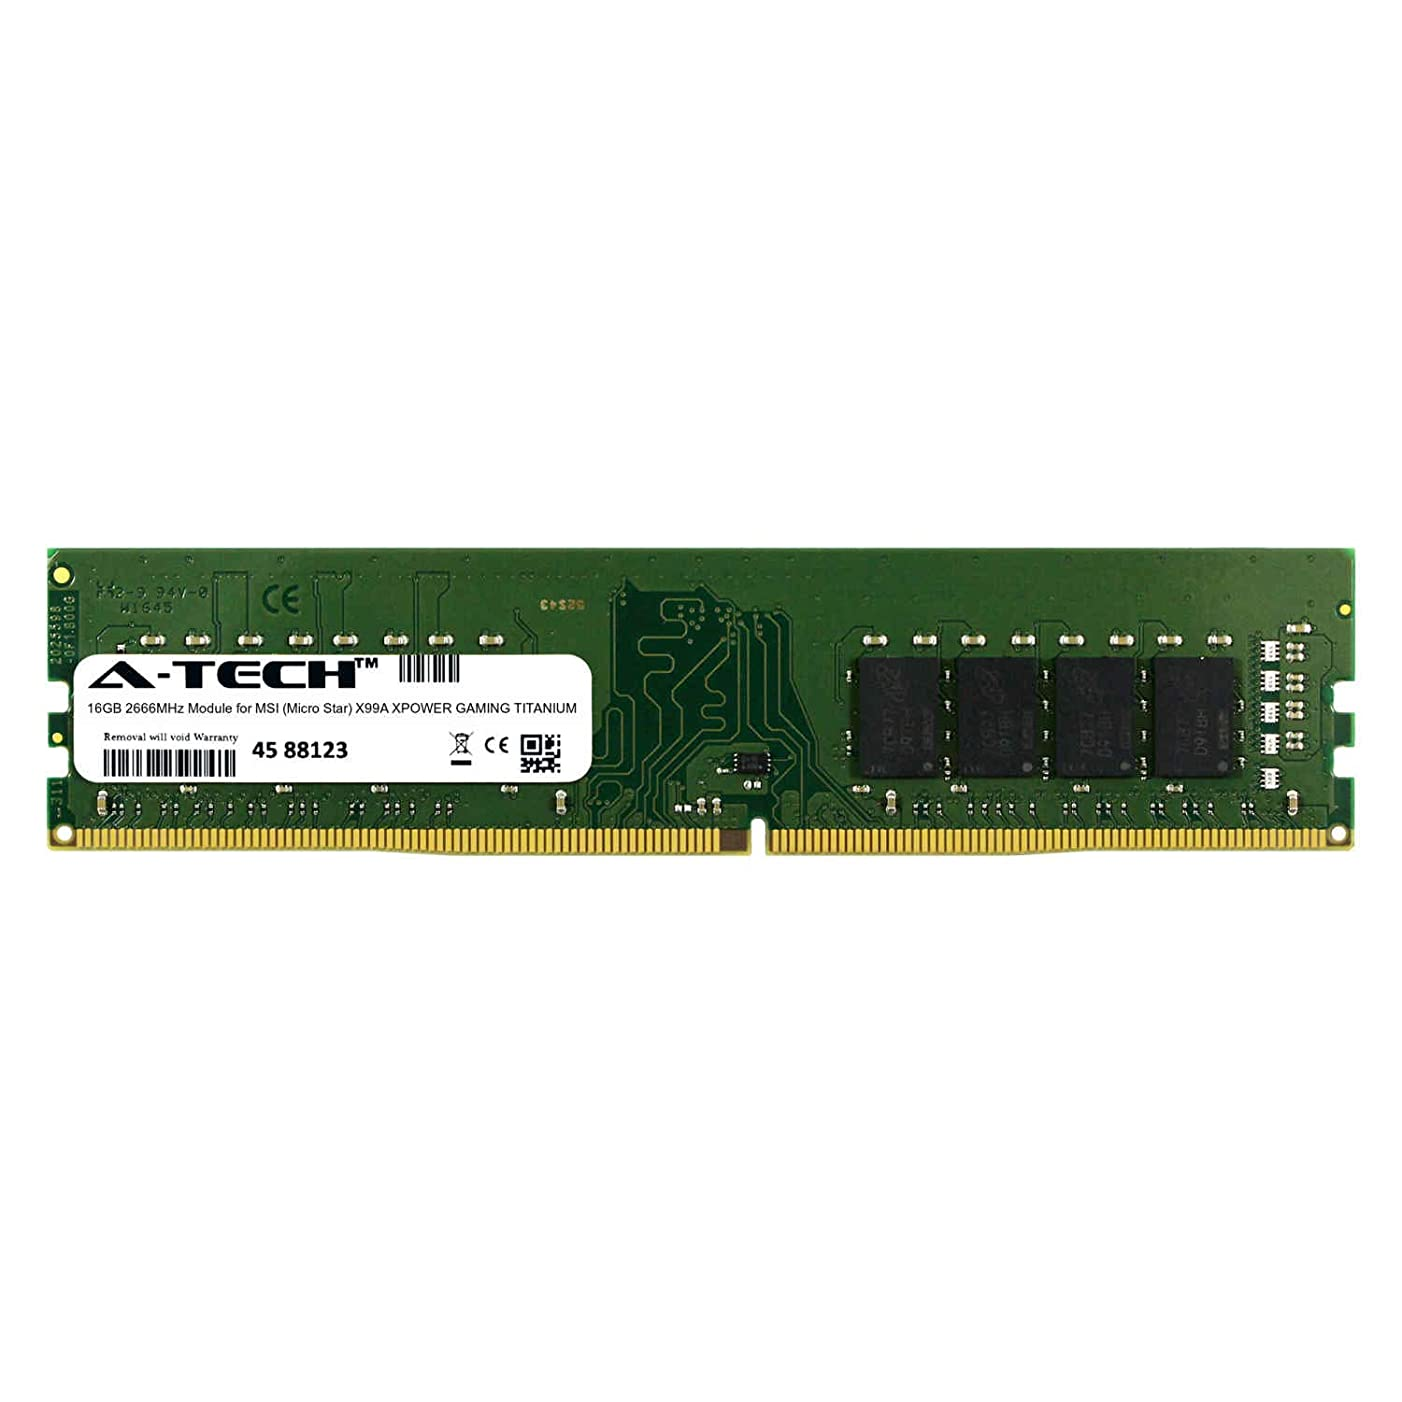 A-Tech 16GB Module for MSI (Micro Star) X99A XPOWER Gaming Titanium Desktop & Workstation Motherboard Compatible DDR4 2666Mhz Memory Ram (ATMS367744A25823X1)